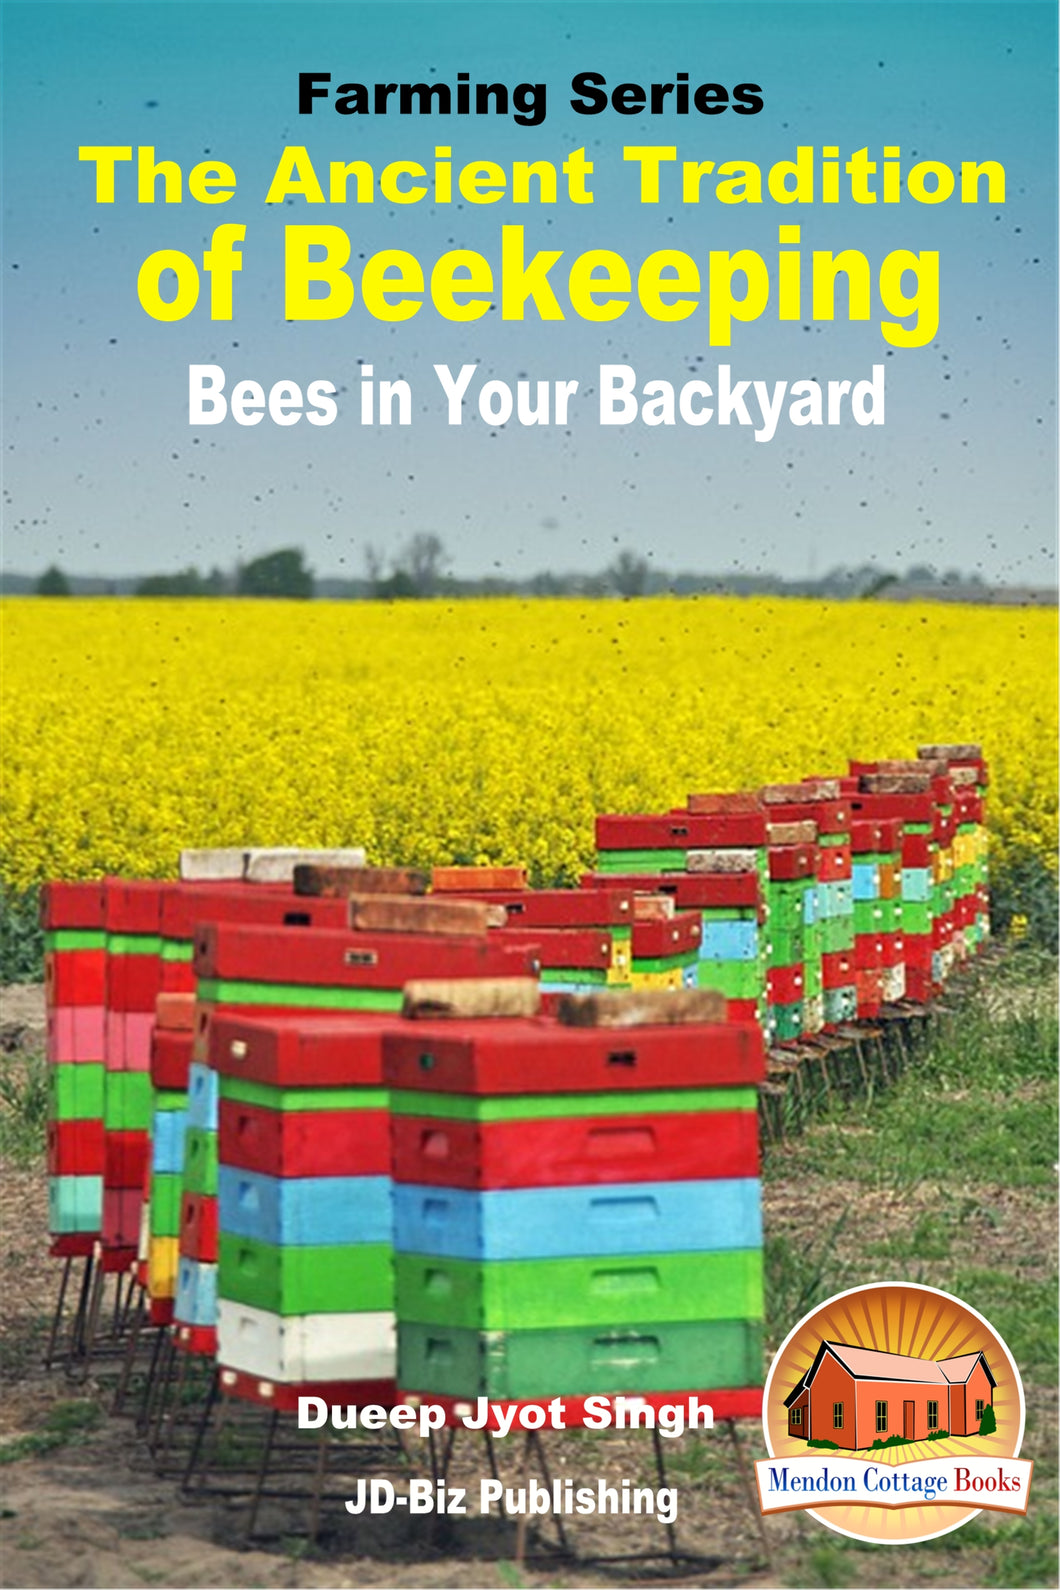 The Ancient Tradition of Beekeeping